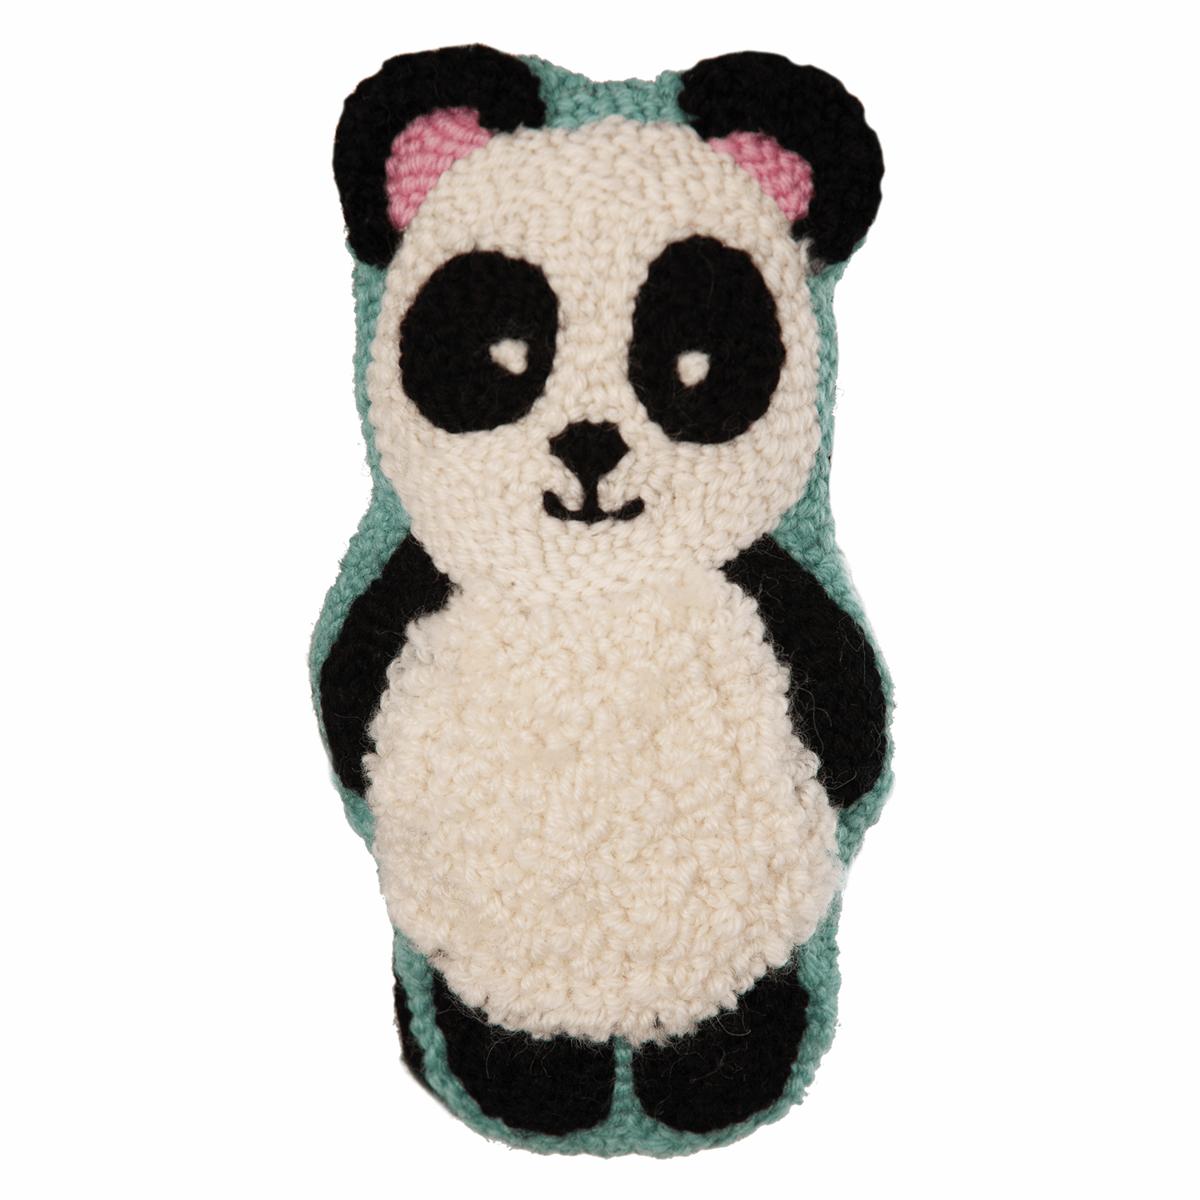 Picture of Punch Needle Kit: Cuddly Friend: Panda